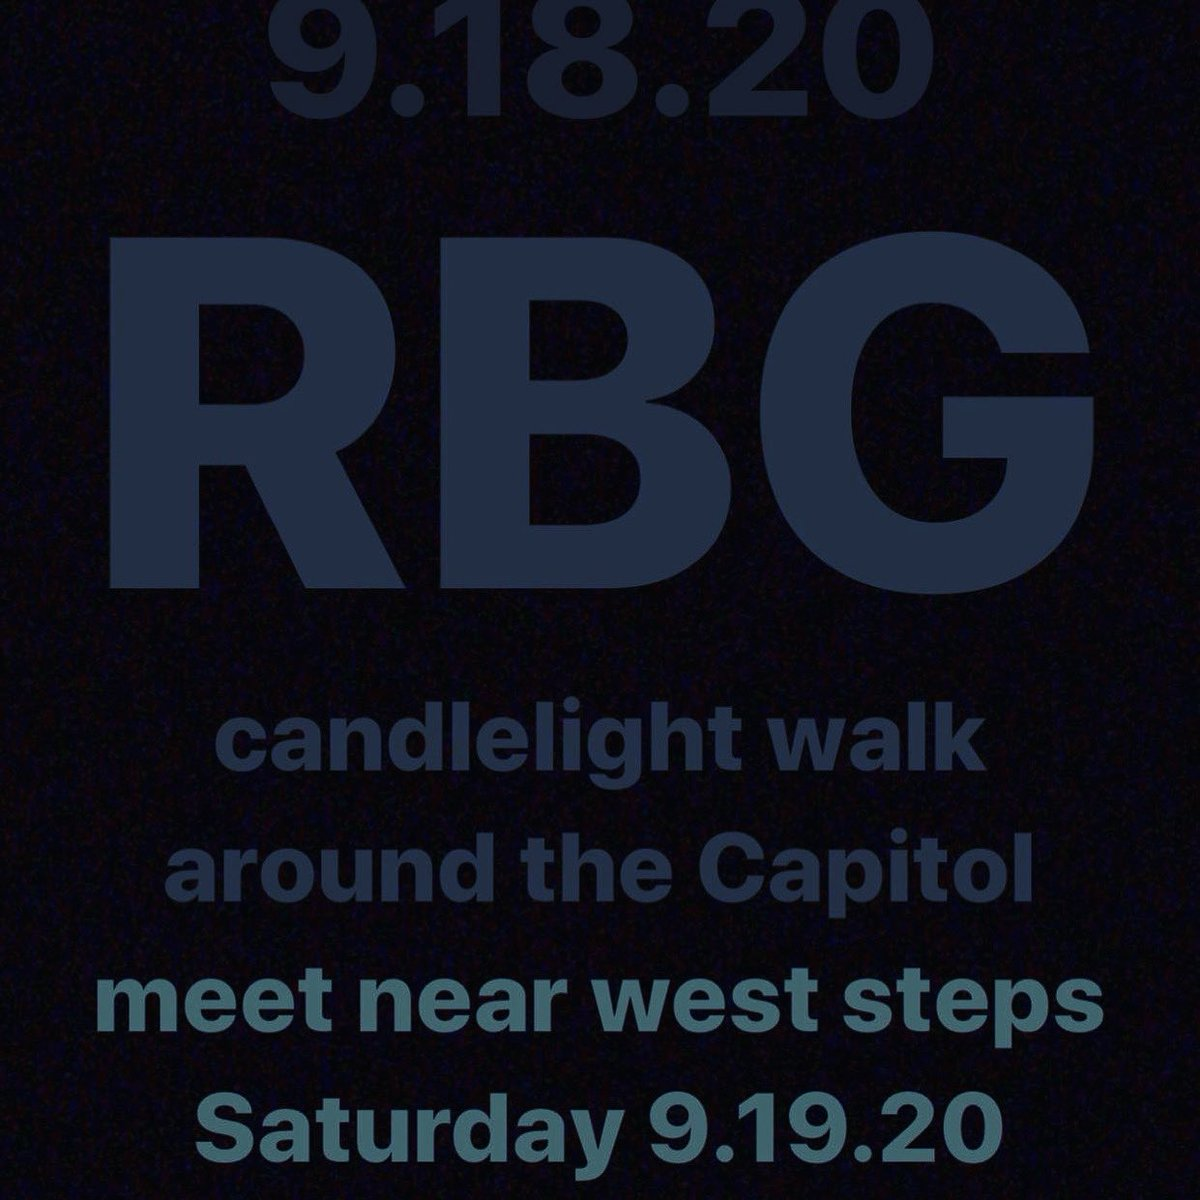 Join @AngeliqueAshby, myself and other admirers of #RBG at the Sacramento County Courthouse, 720 9th St., at 8 pm to honor her extraordinary life and contribution to our country. Candlelight vigil follows at state Capitol. https://t.co/N5u52Htkw7